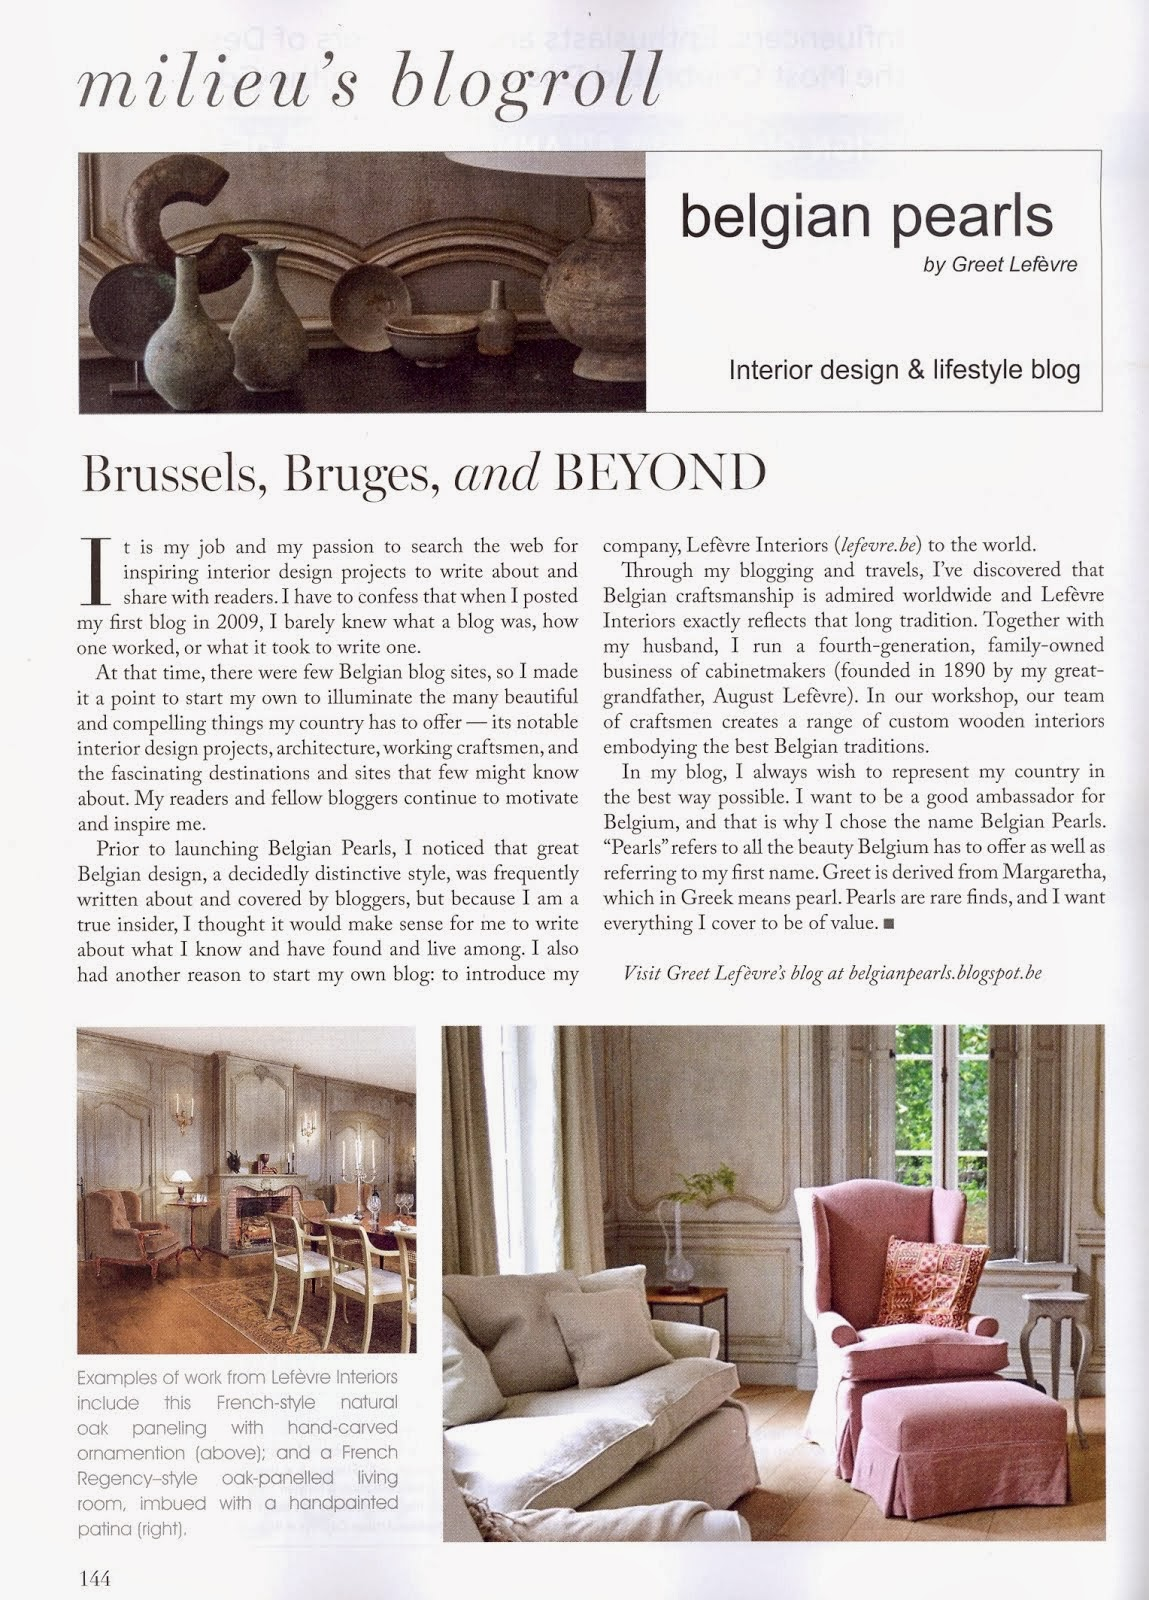 BELGIAN PEARLS FEATURED IN Magazine MILIEU Spring 2014